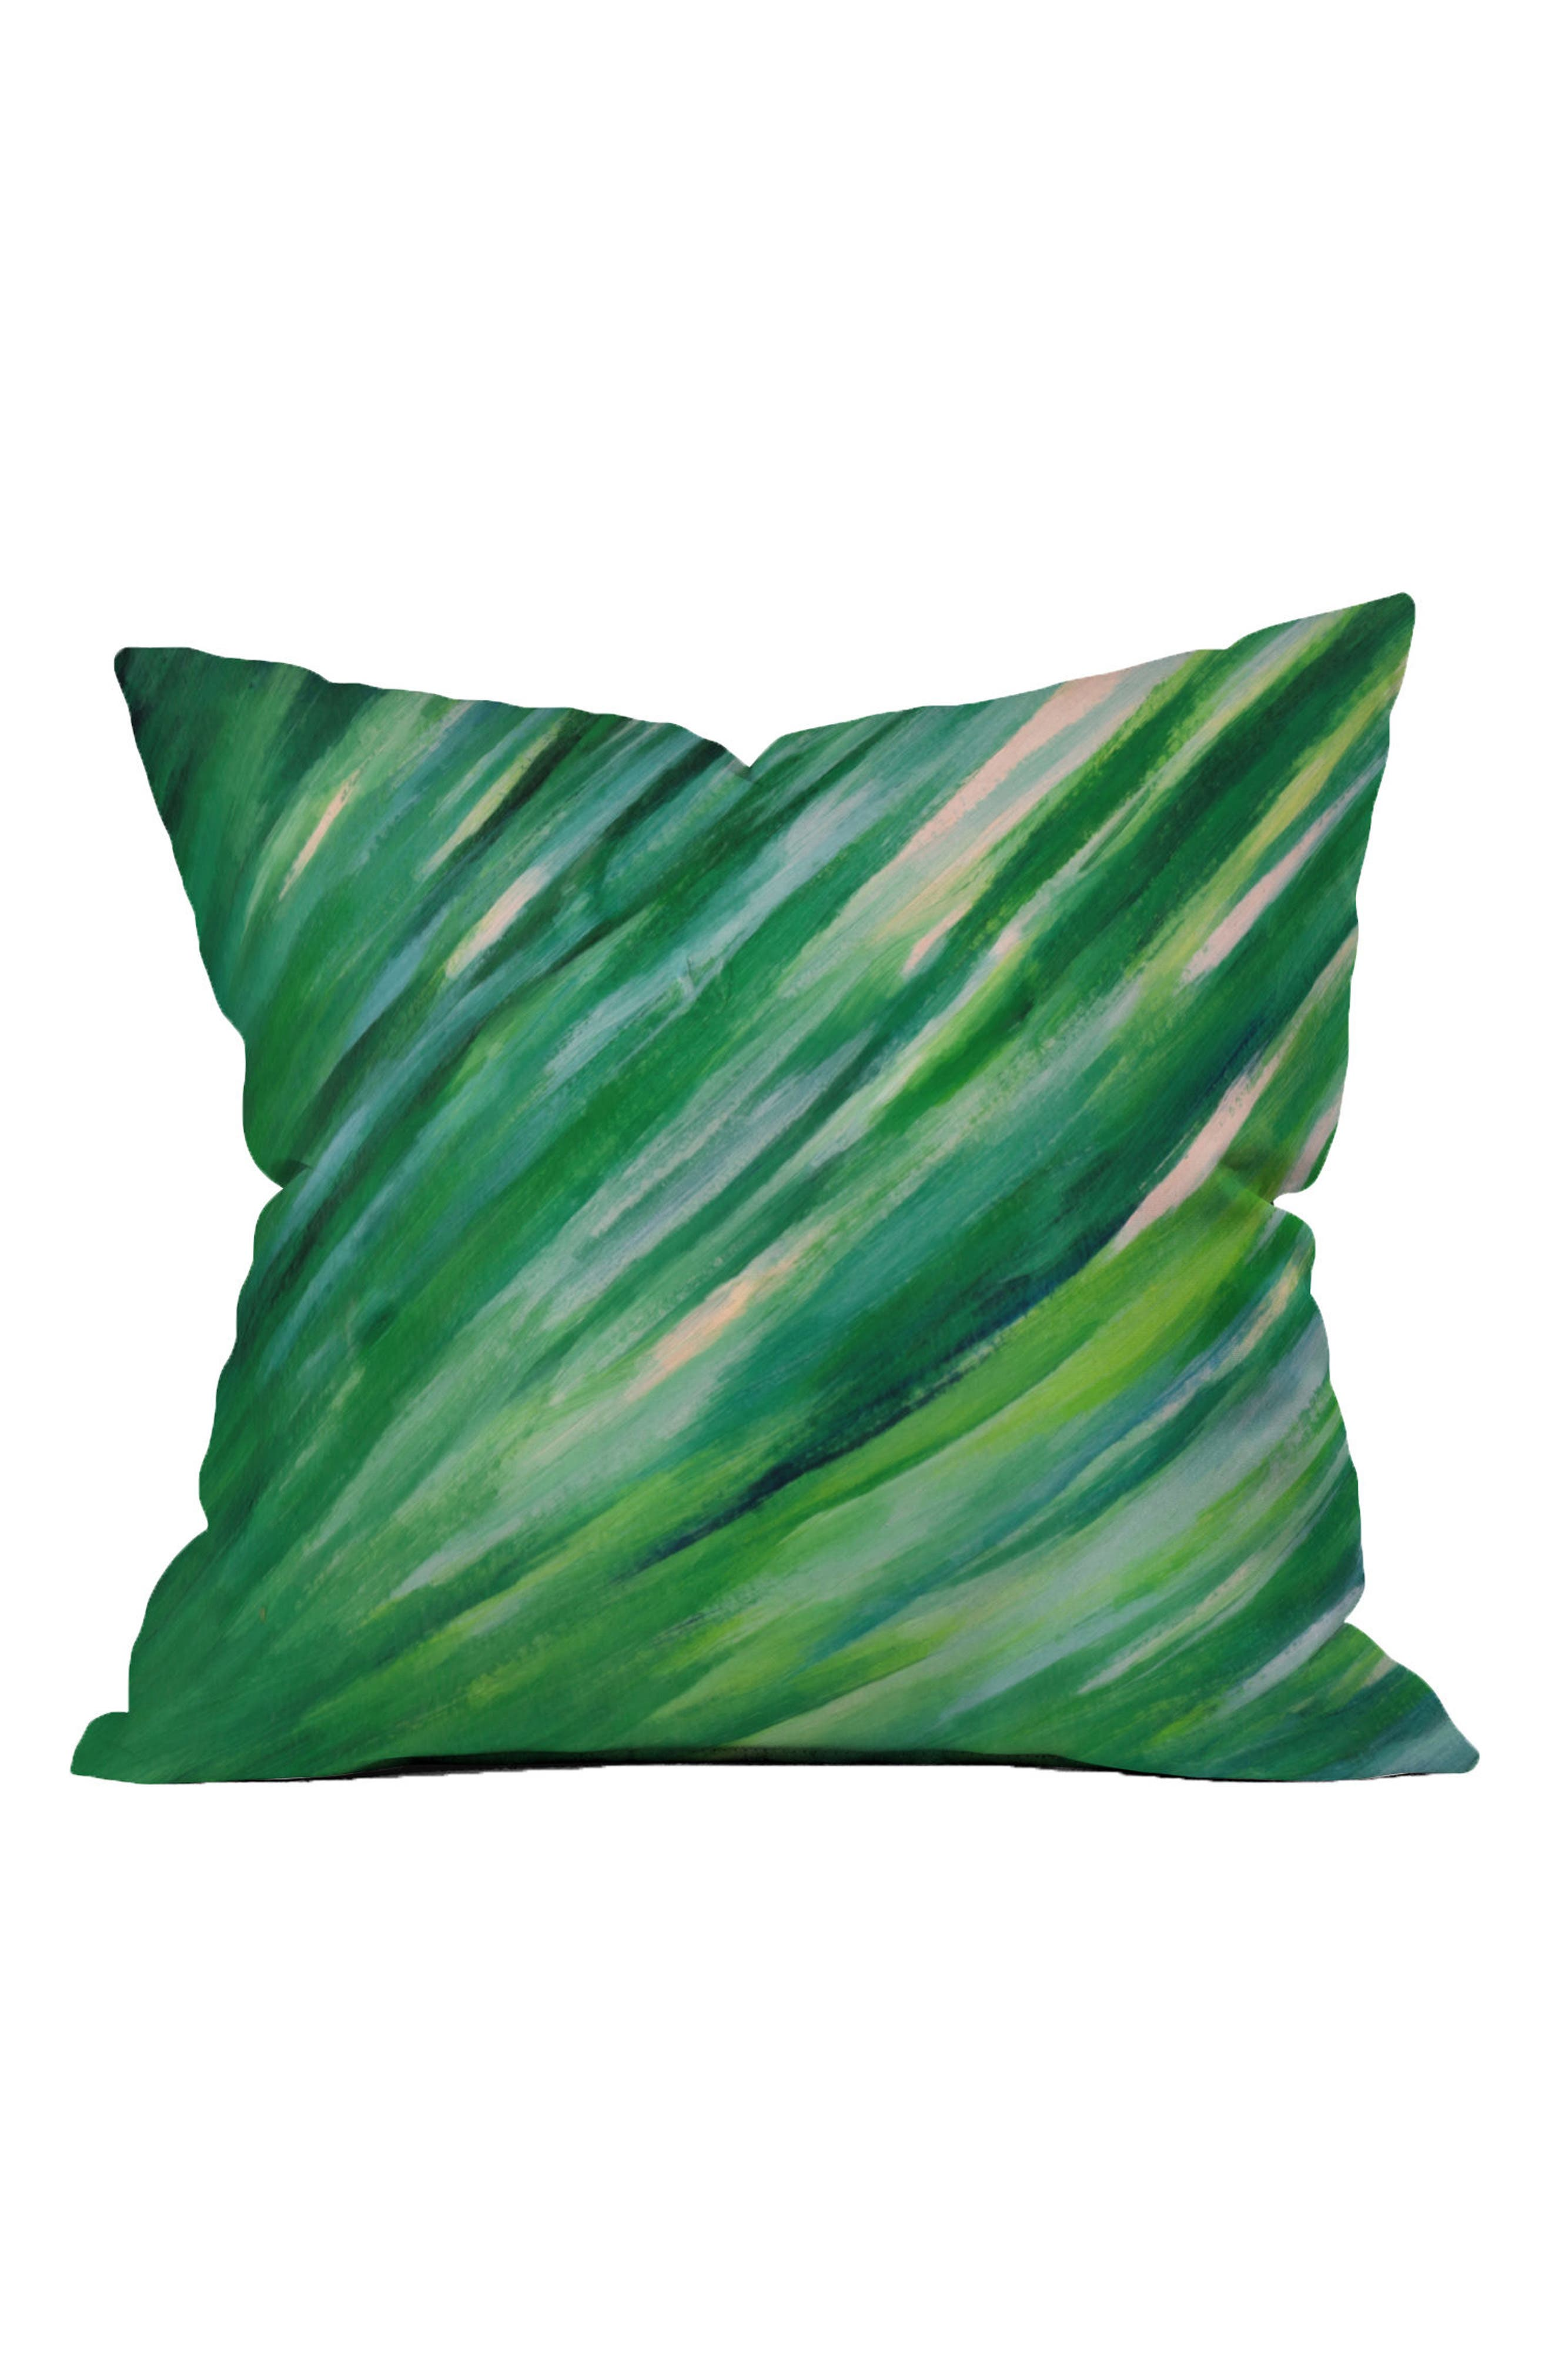 Rosie Blade Grass Accent Pillow,                             Main thumbnail 1, color,                             300